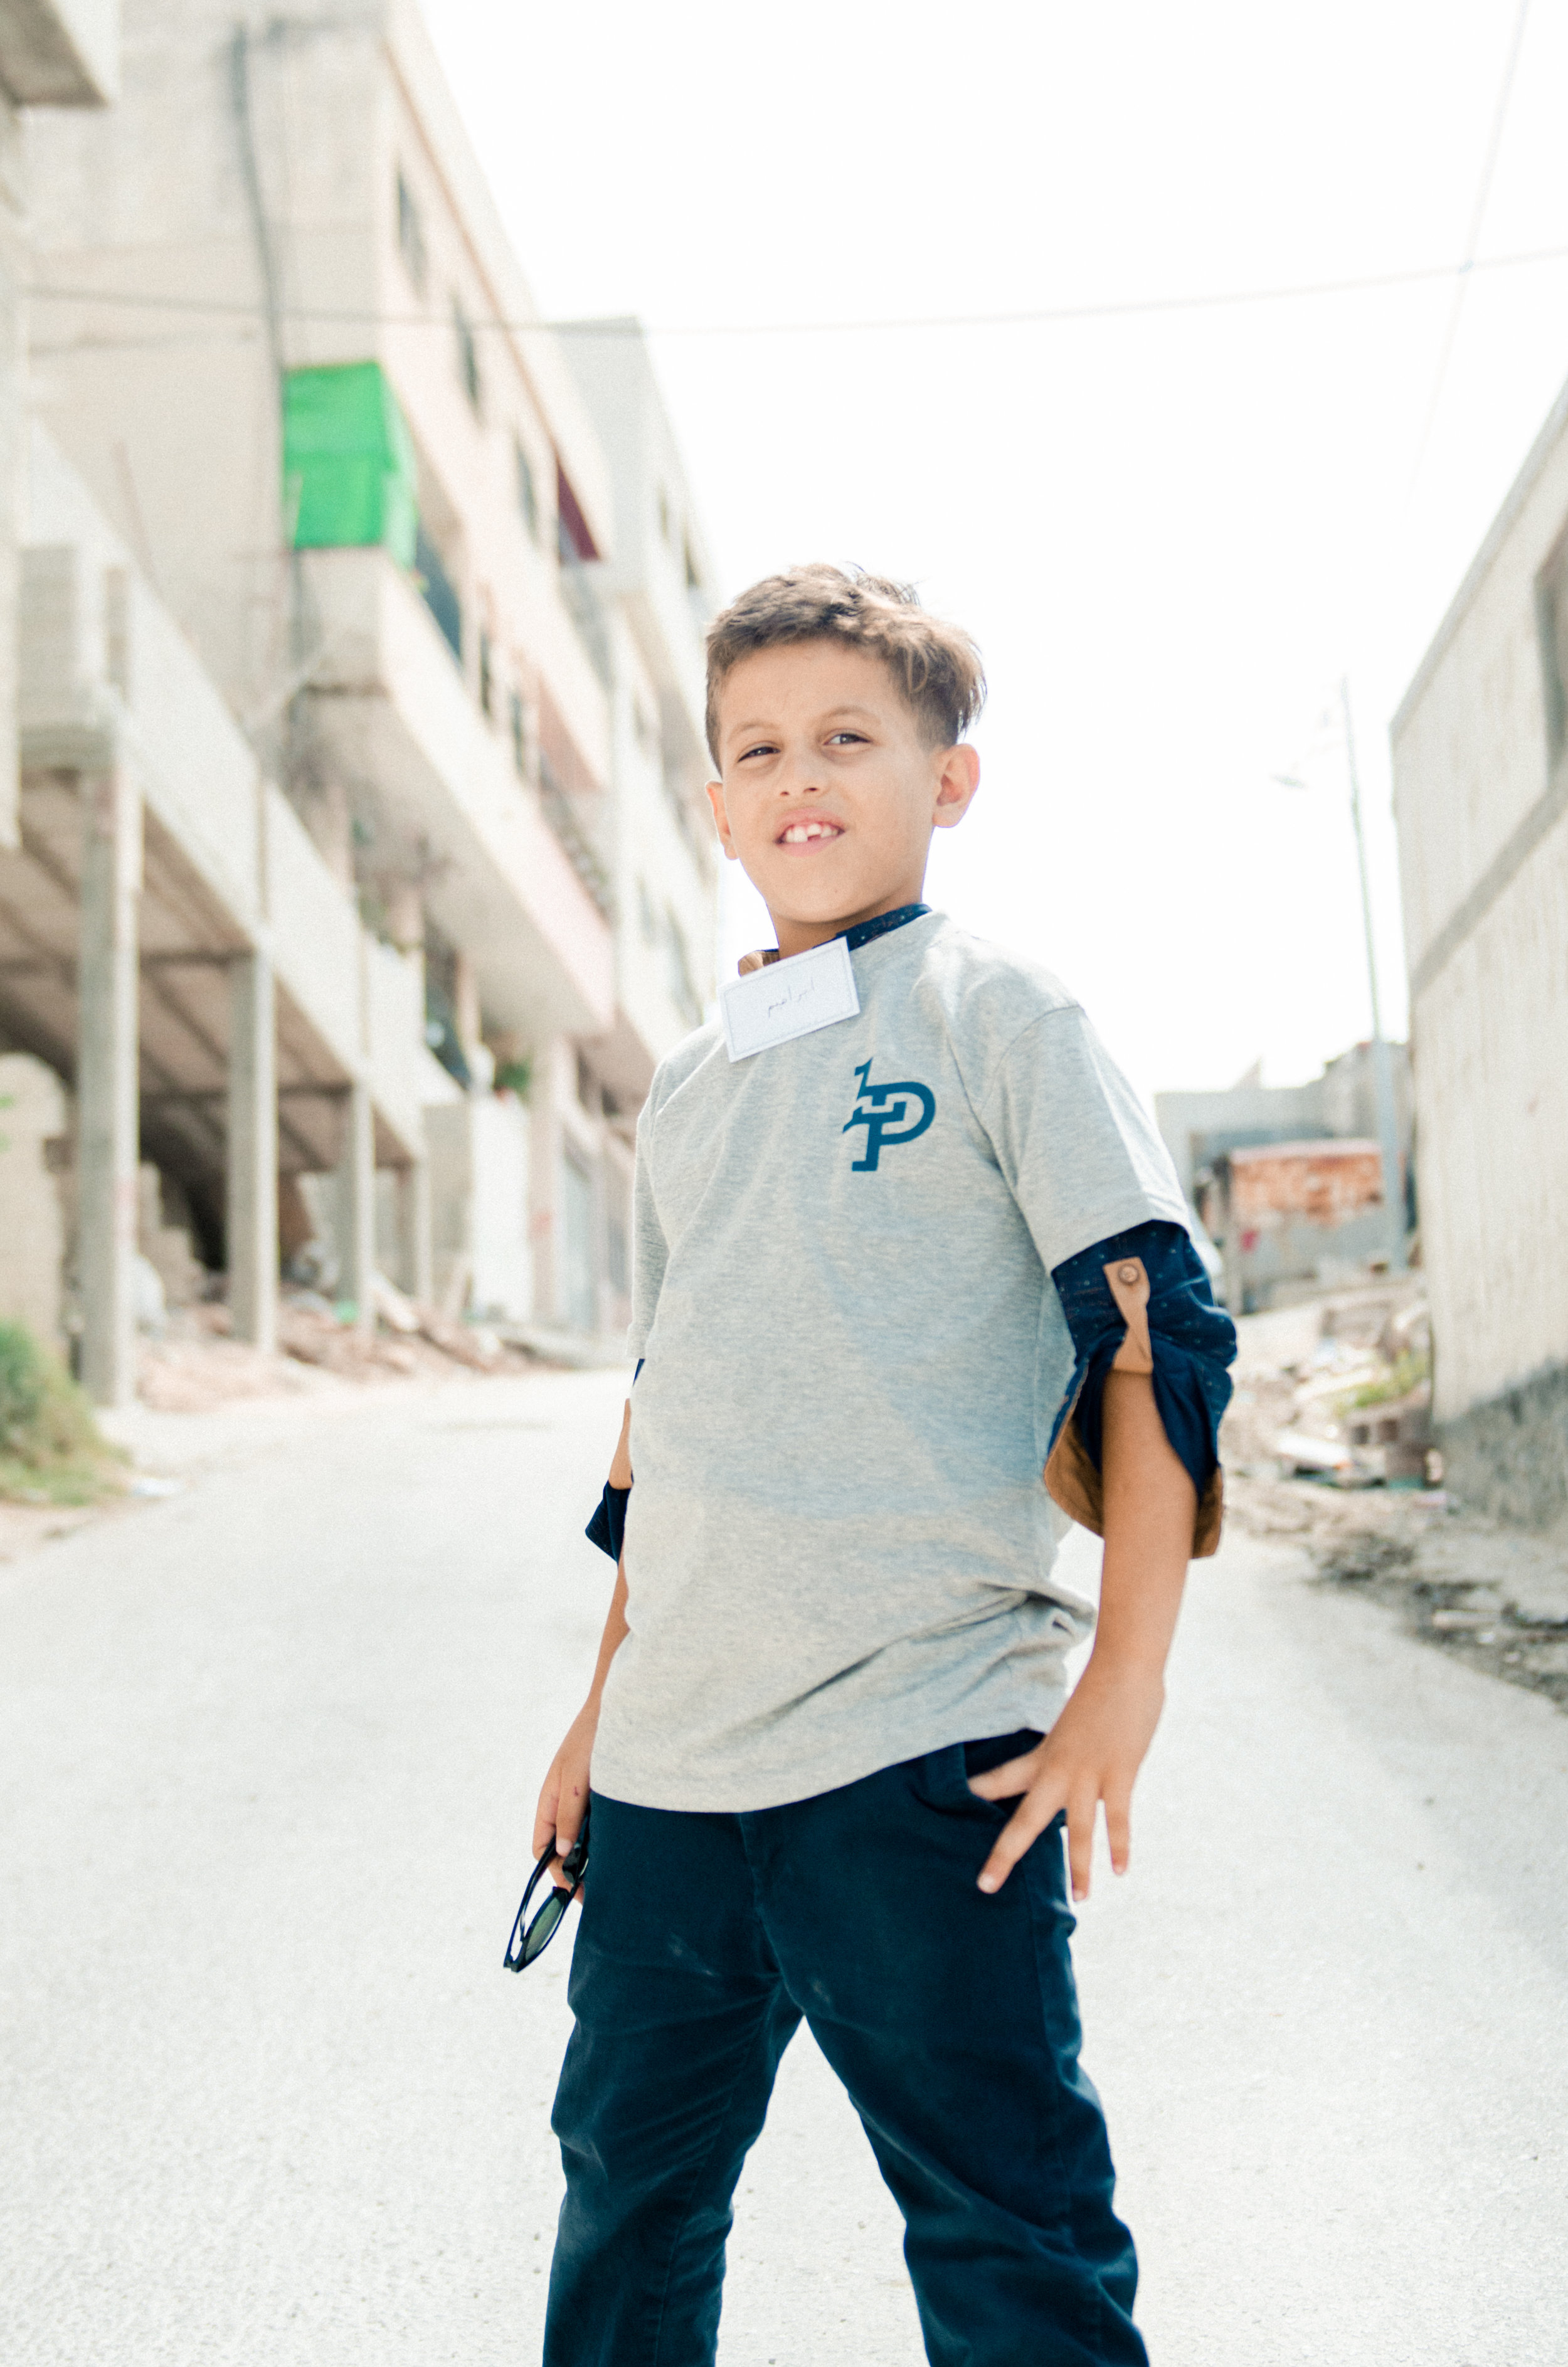 What is your favorite subject in school?     Sports, because I want to be a football player.     2. What makes you happy?      Swimming, because it makes me move and be active.      What are your hobbies?     Arm wrestling, because I am proud when I win in front of my friends.